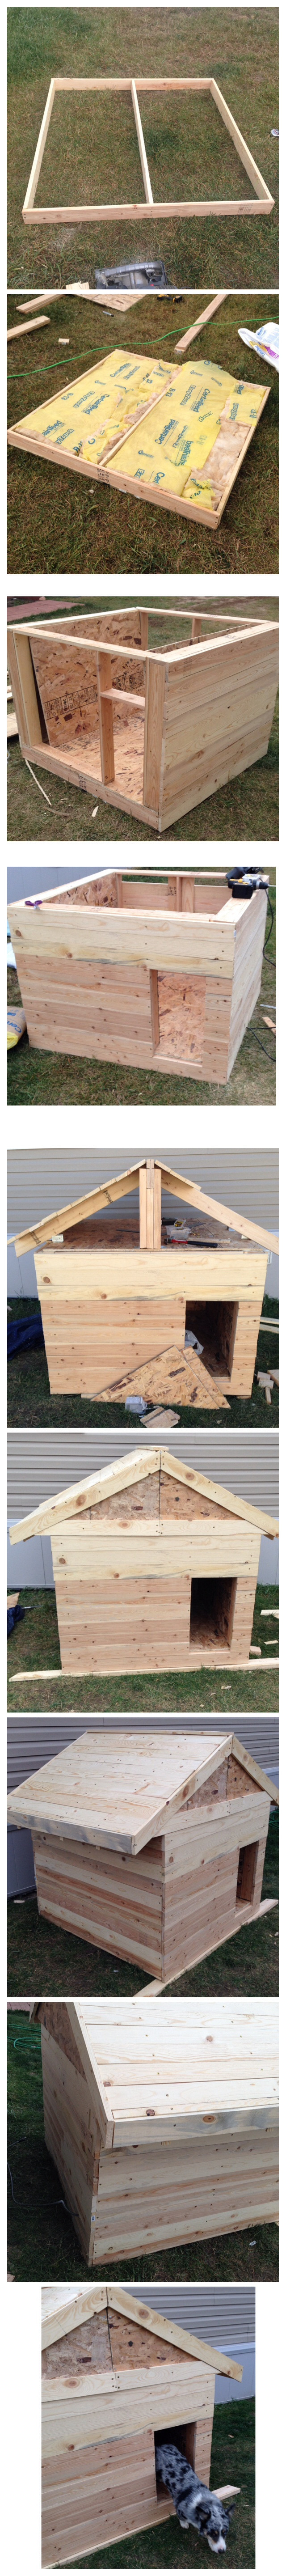 building a heated and insulated dog house